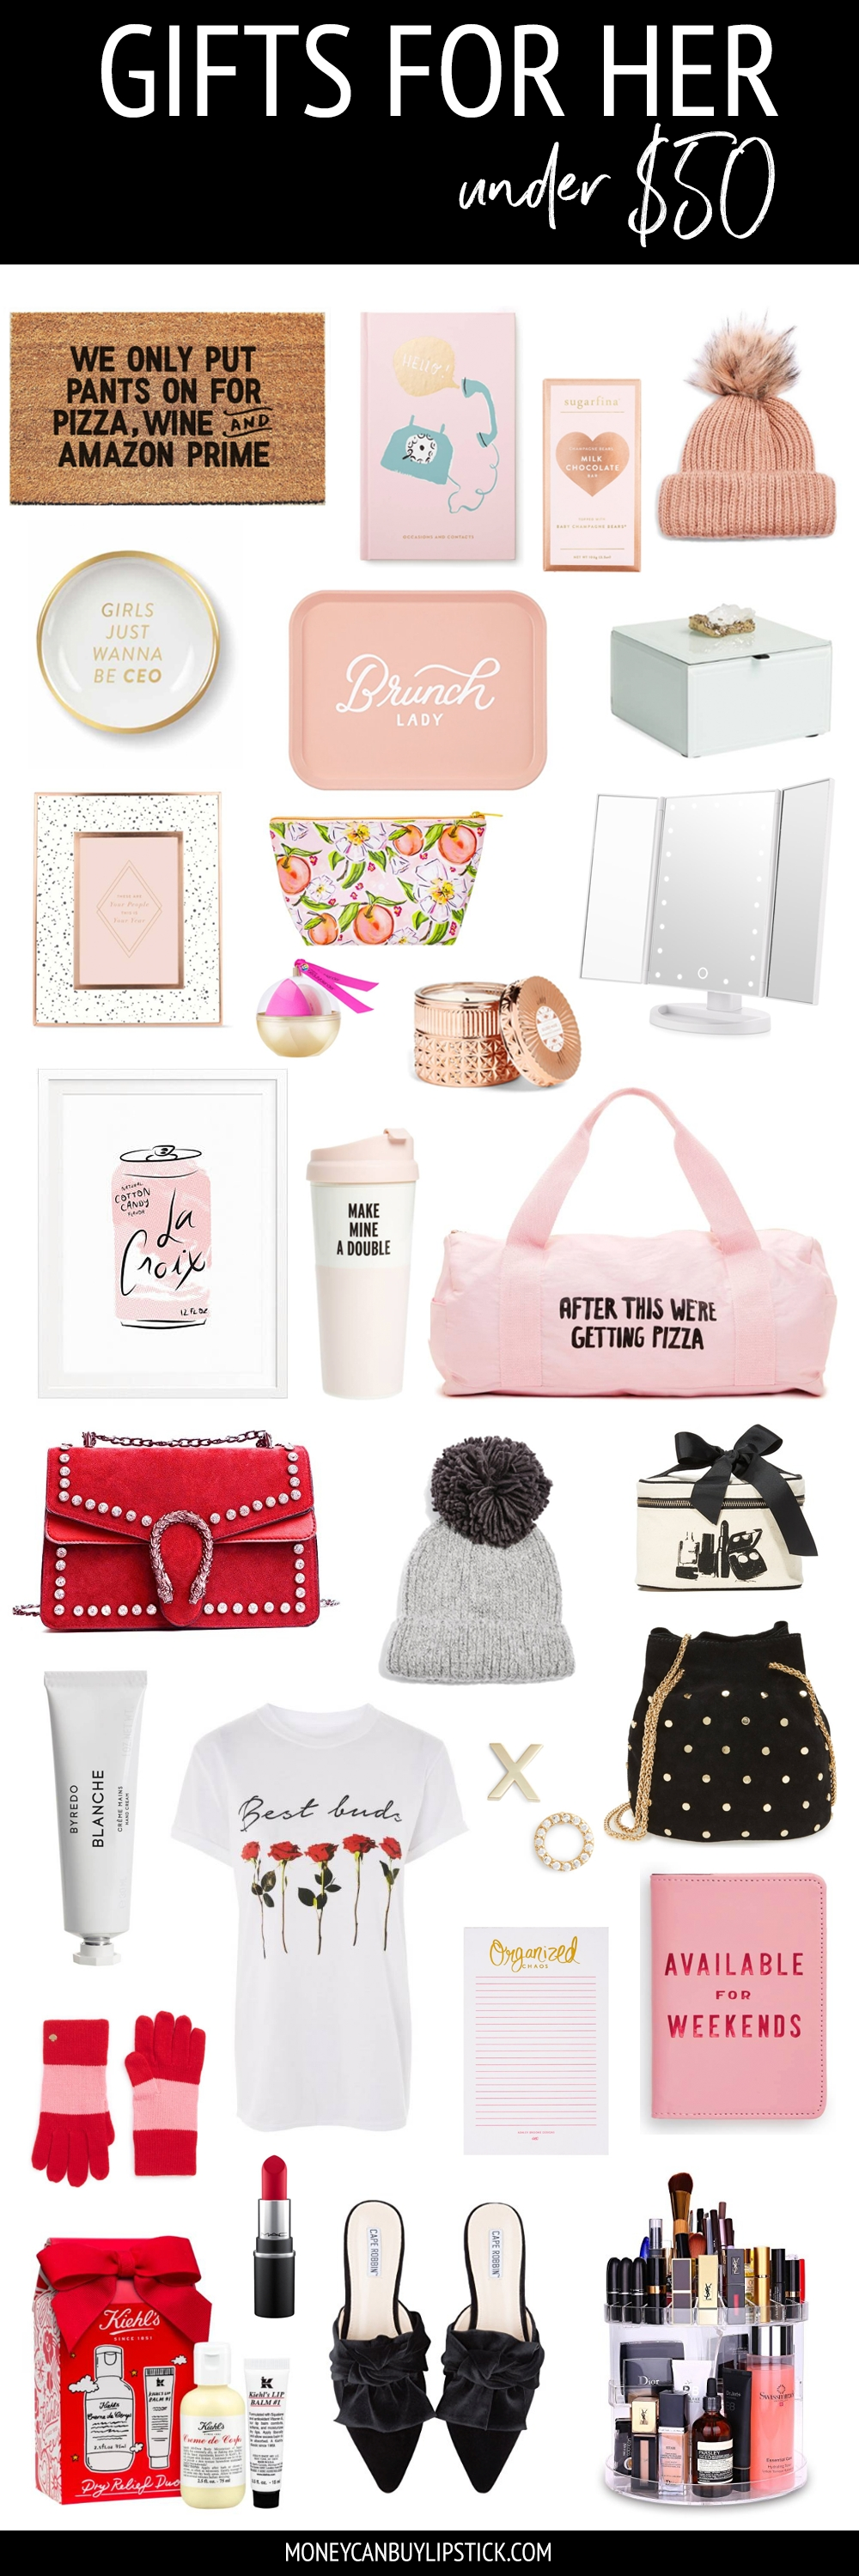 10 Attractive Christmas Gift Ideas For Sister